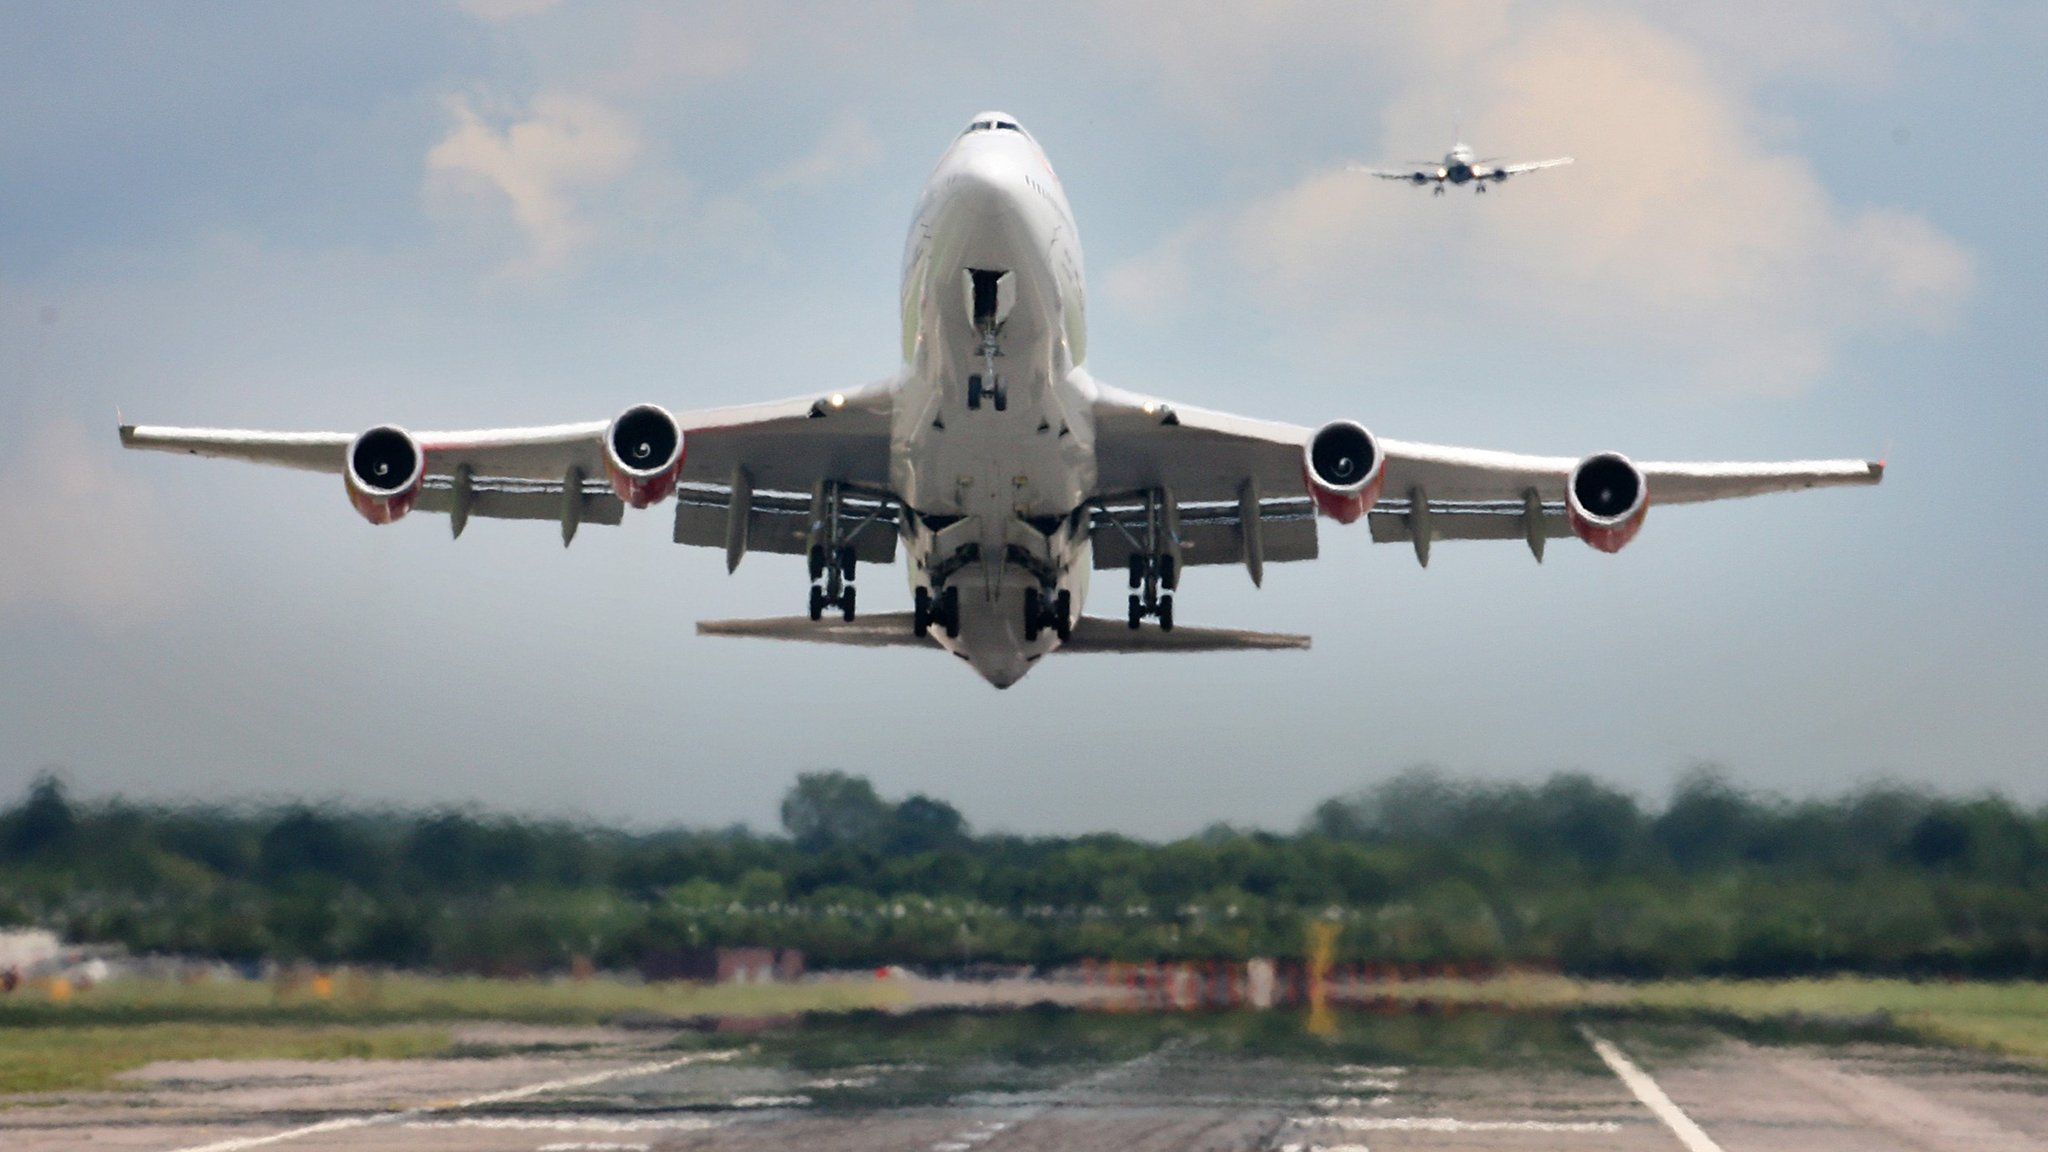 Airport expansion decision needed 'urgently' - MPs